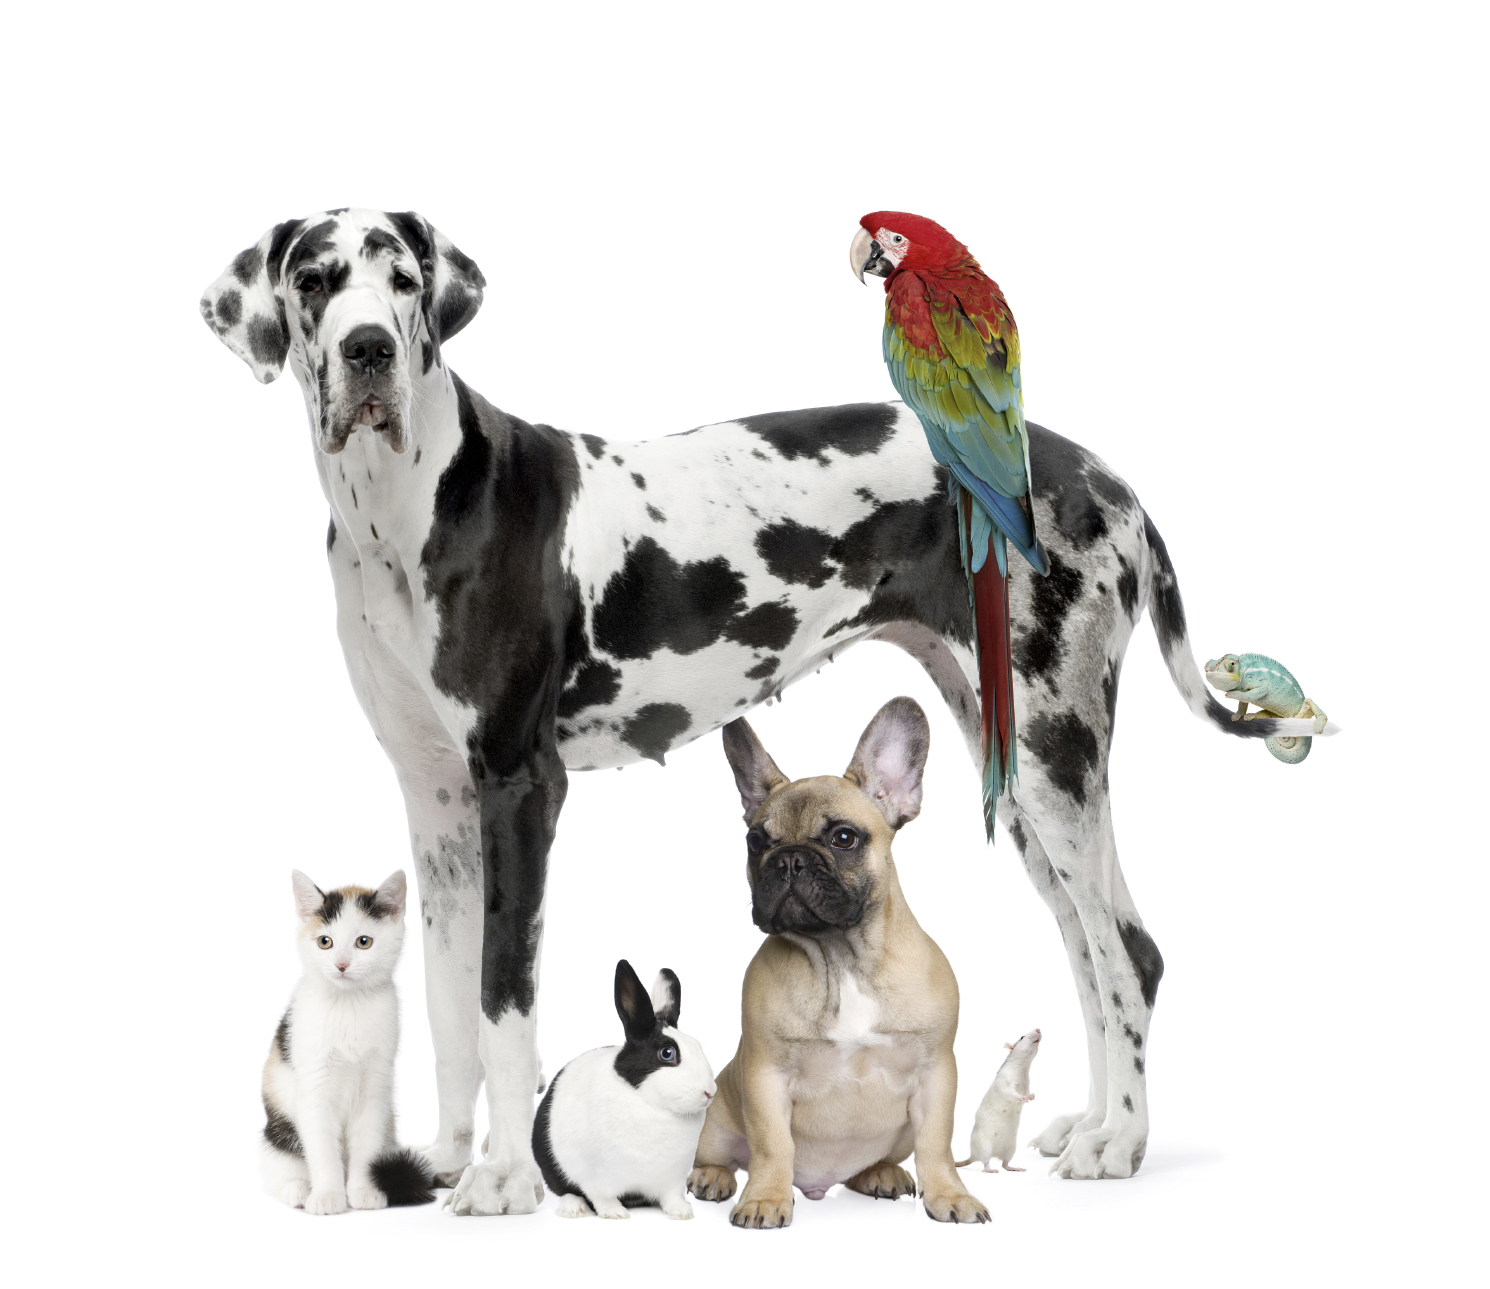 Top 8 Health Benefits of Owning a Pet